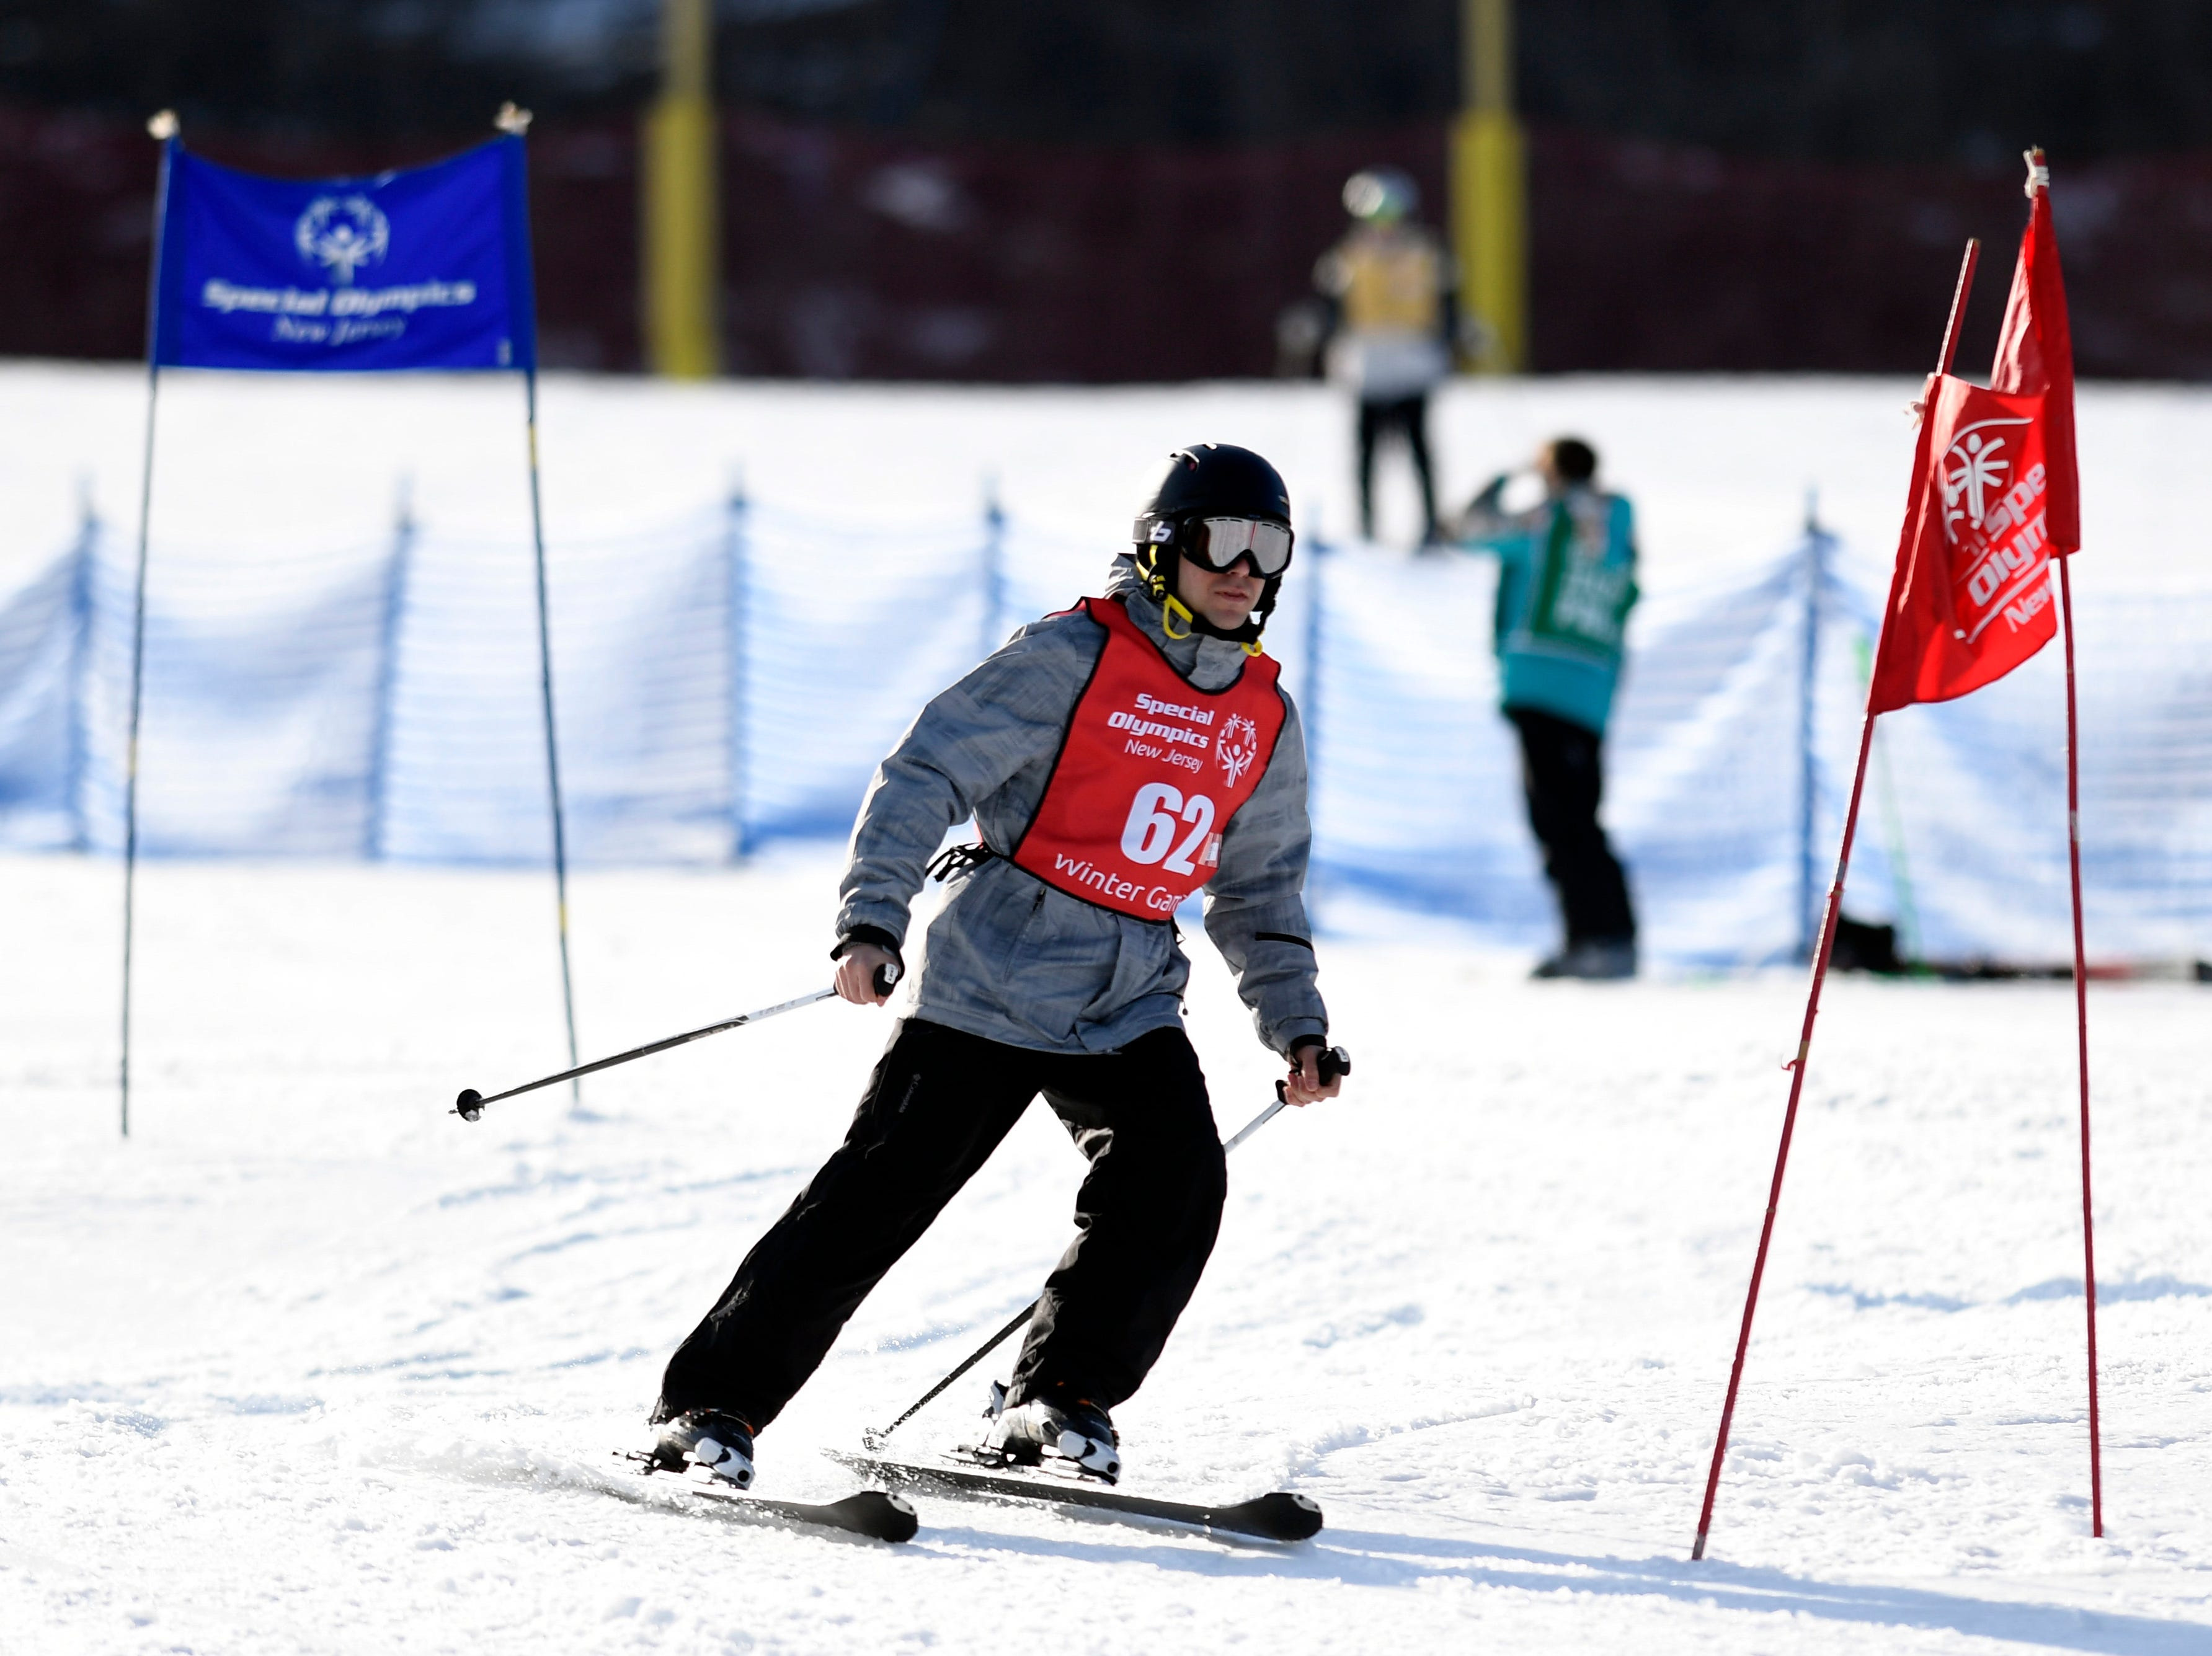 Jeffrey DiAntonio of Wildwood competes in the giant slalom during the Special Olympics New Jersey 2019 Winter Games on Tuesday, Feb. 5, 2019, in Vernon.